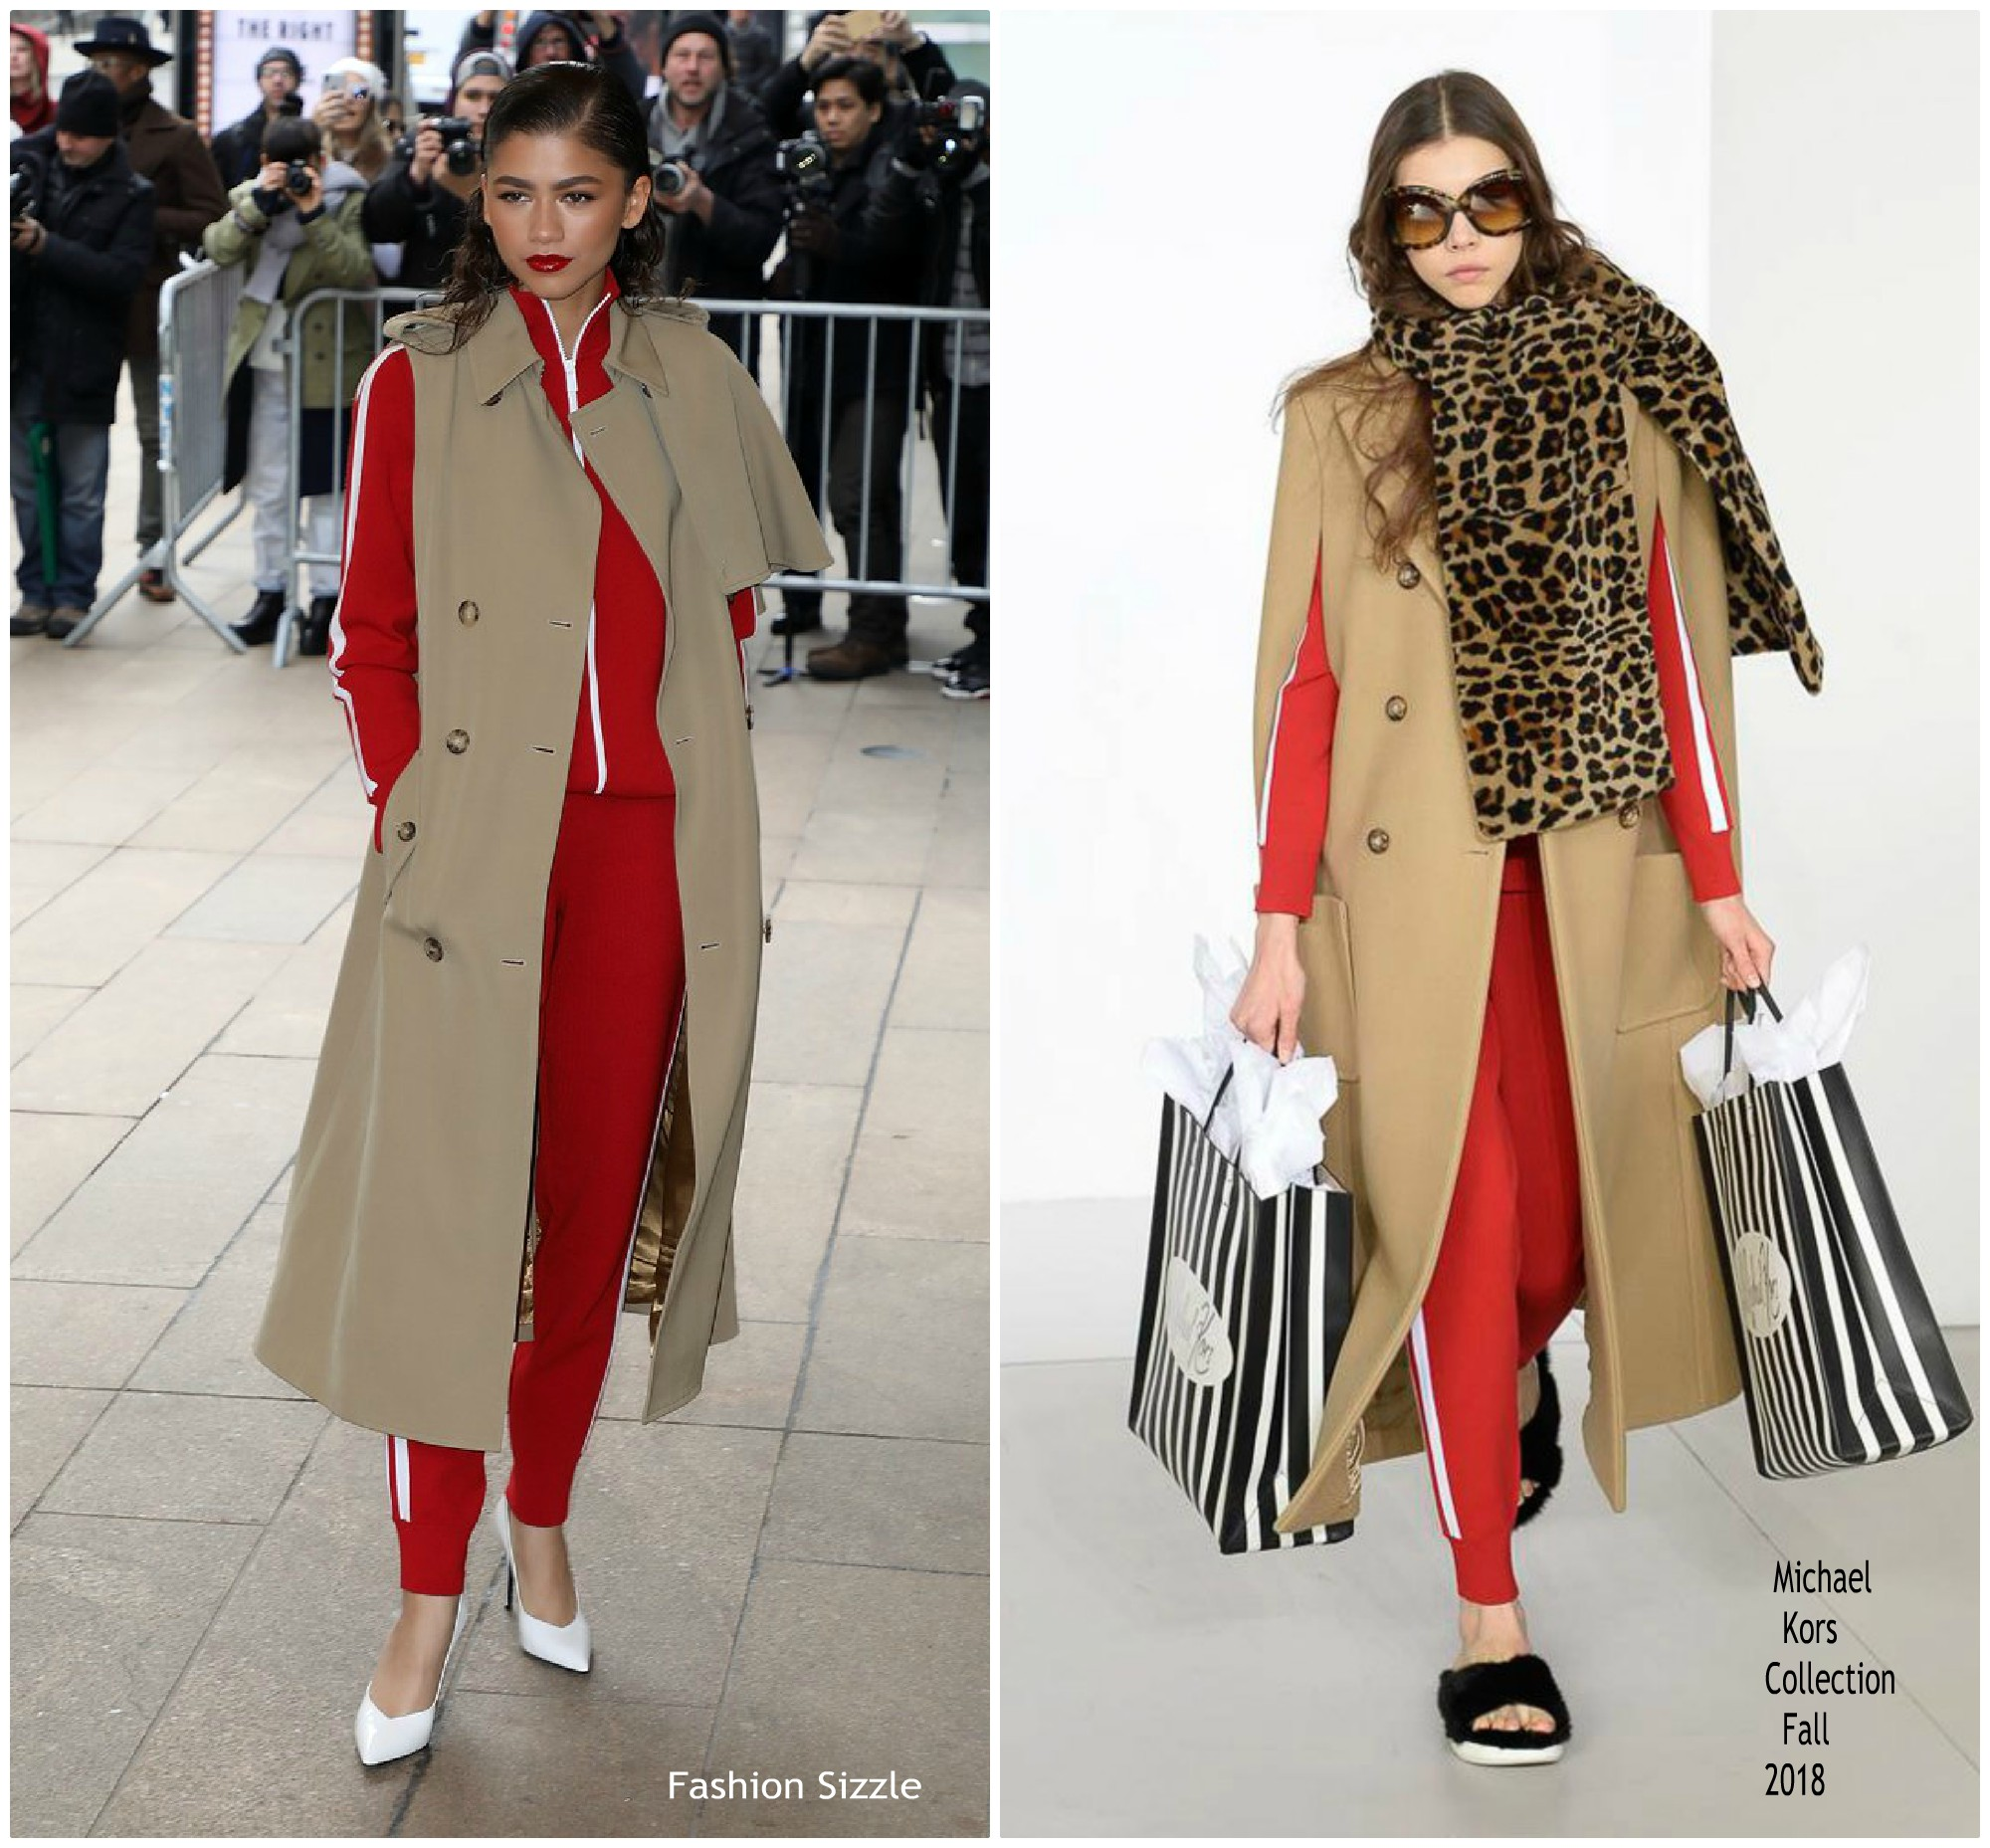 zendaya-coleman-in-michael-kors-collection-michael-kors-fall-2018-nyfw-front-row